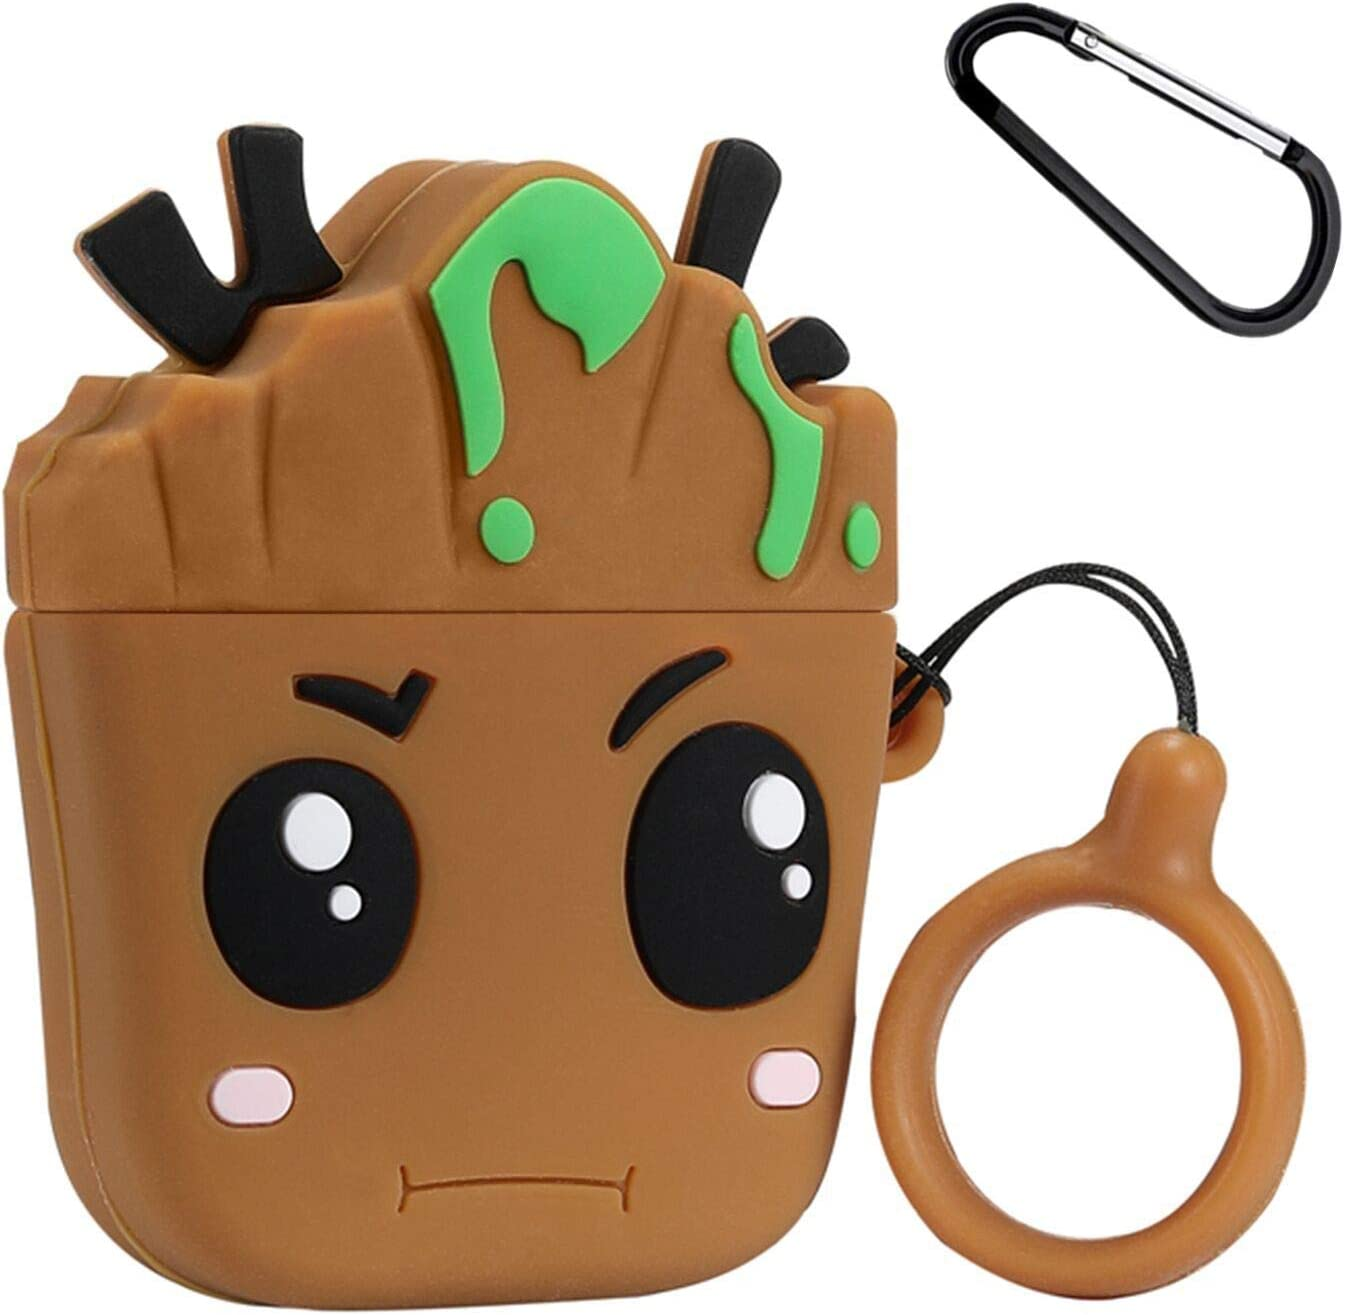 Mulafnxal Compatible with Airpods 1&2 Case,Silicone 3D Cute Fun Cartoon Character Airpod Cover,Kawaii Plant Animal Funny Fashion Design Skin,Shockproof Cases for Teens Girls Boys Air pods (Tree Baby)